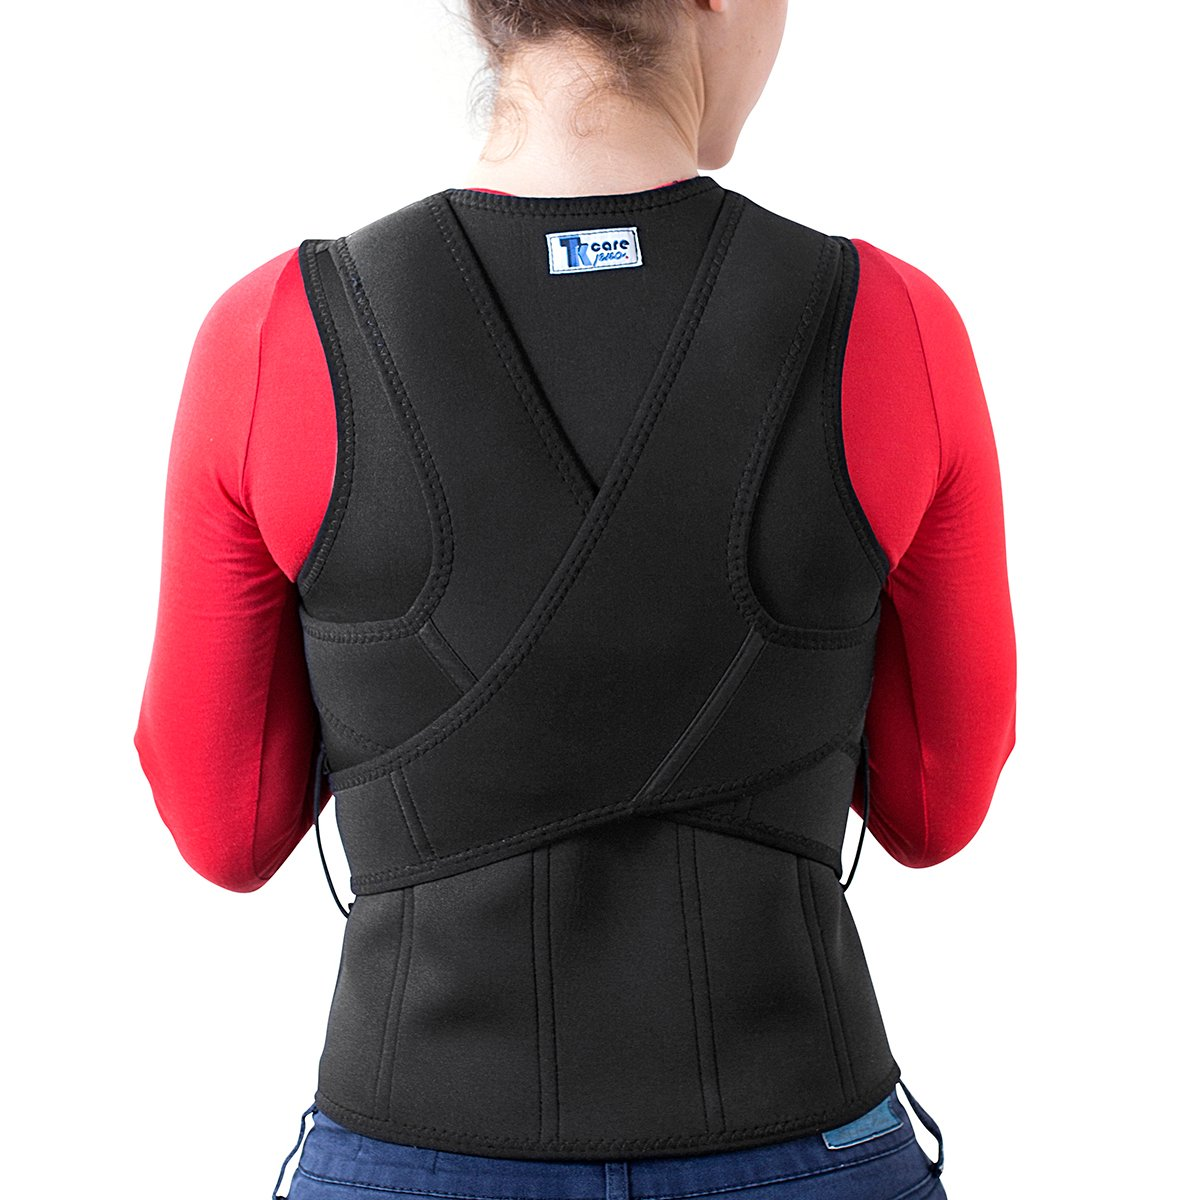 THE ULTIMATE Posture Corrector for Women & Men Under Clothes | Effective & Comfortable | Back Brace for Slouching & Hunching -Shoulders Clavicle Support | Upper & Lower Back Supports | Body Therapy by TK Care Pro.